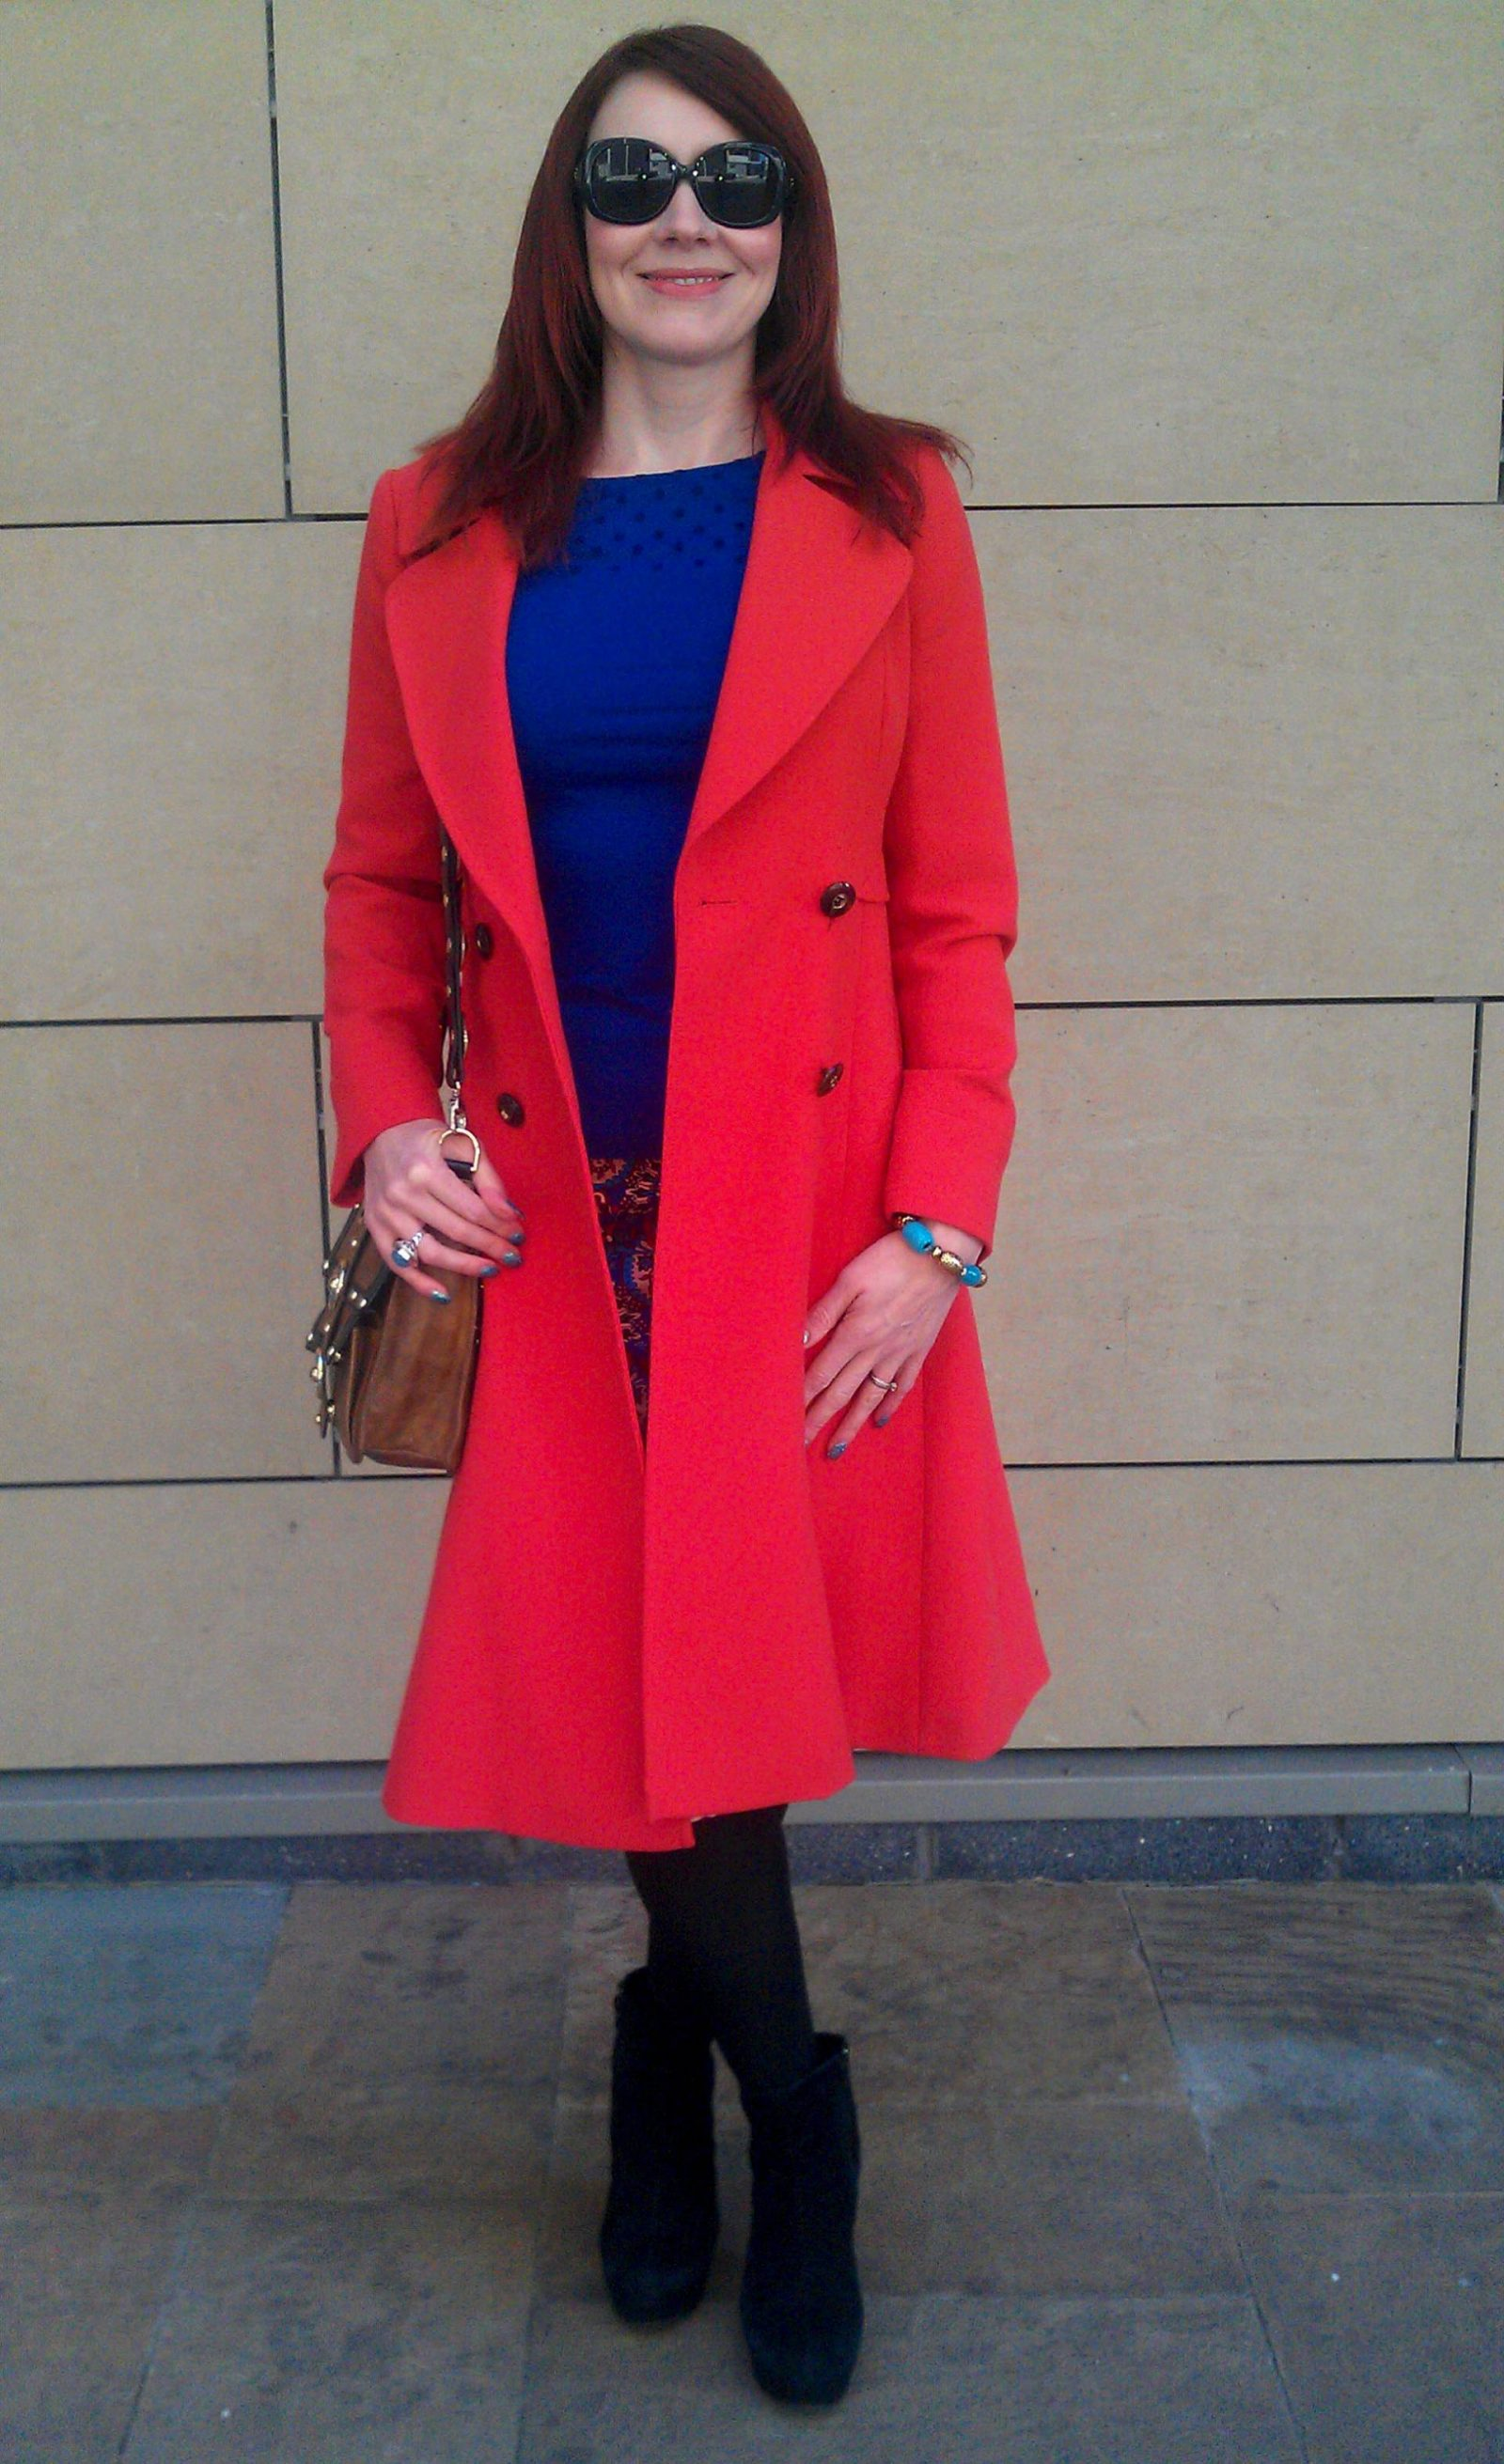 High Street Heroes | H&M Blue Spot Top and Matalan Pencil Skirt, Red Jasper Conran coat